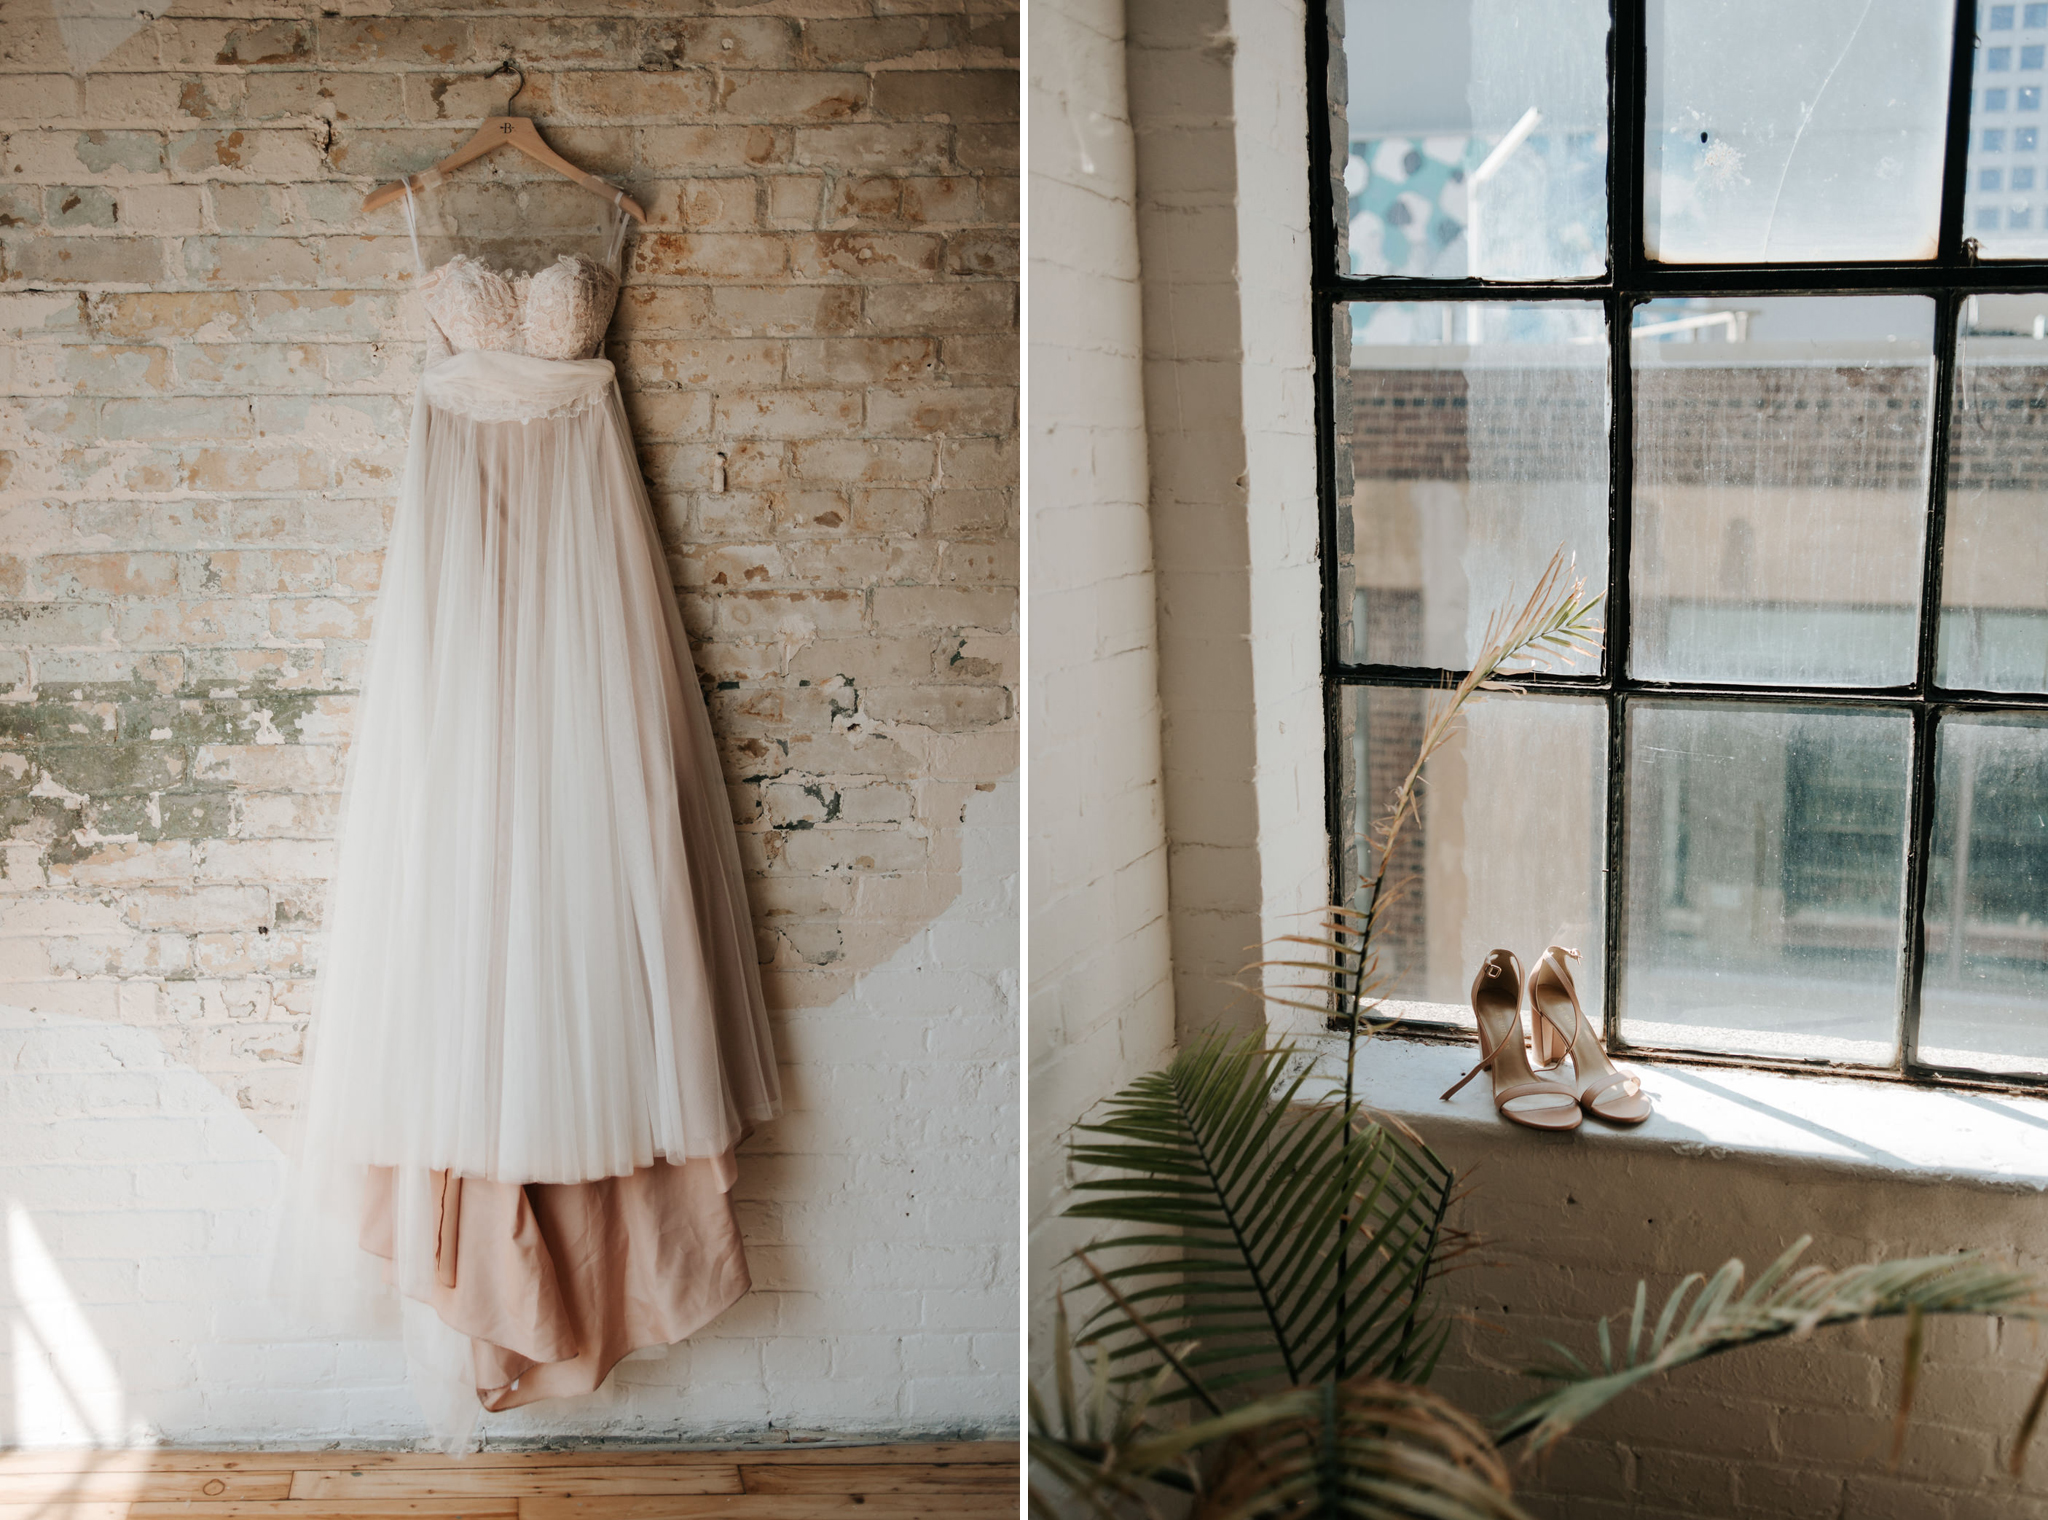 wedding dress hanging on old brick wall